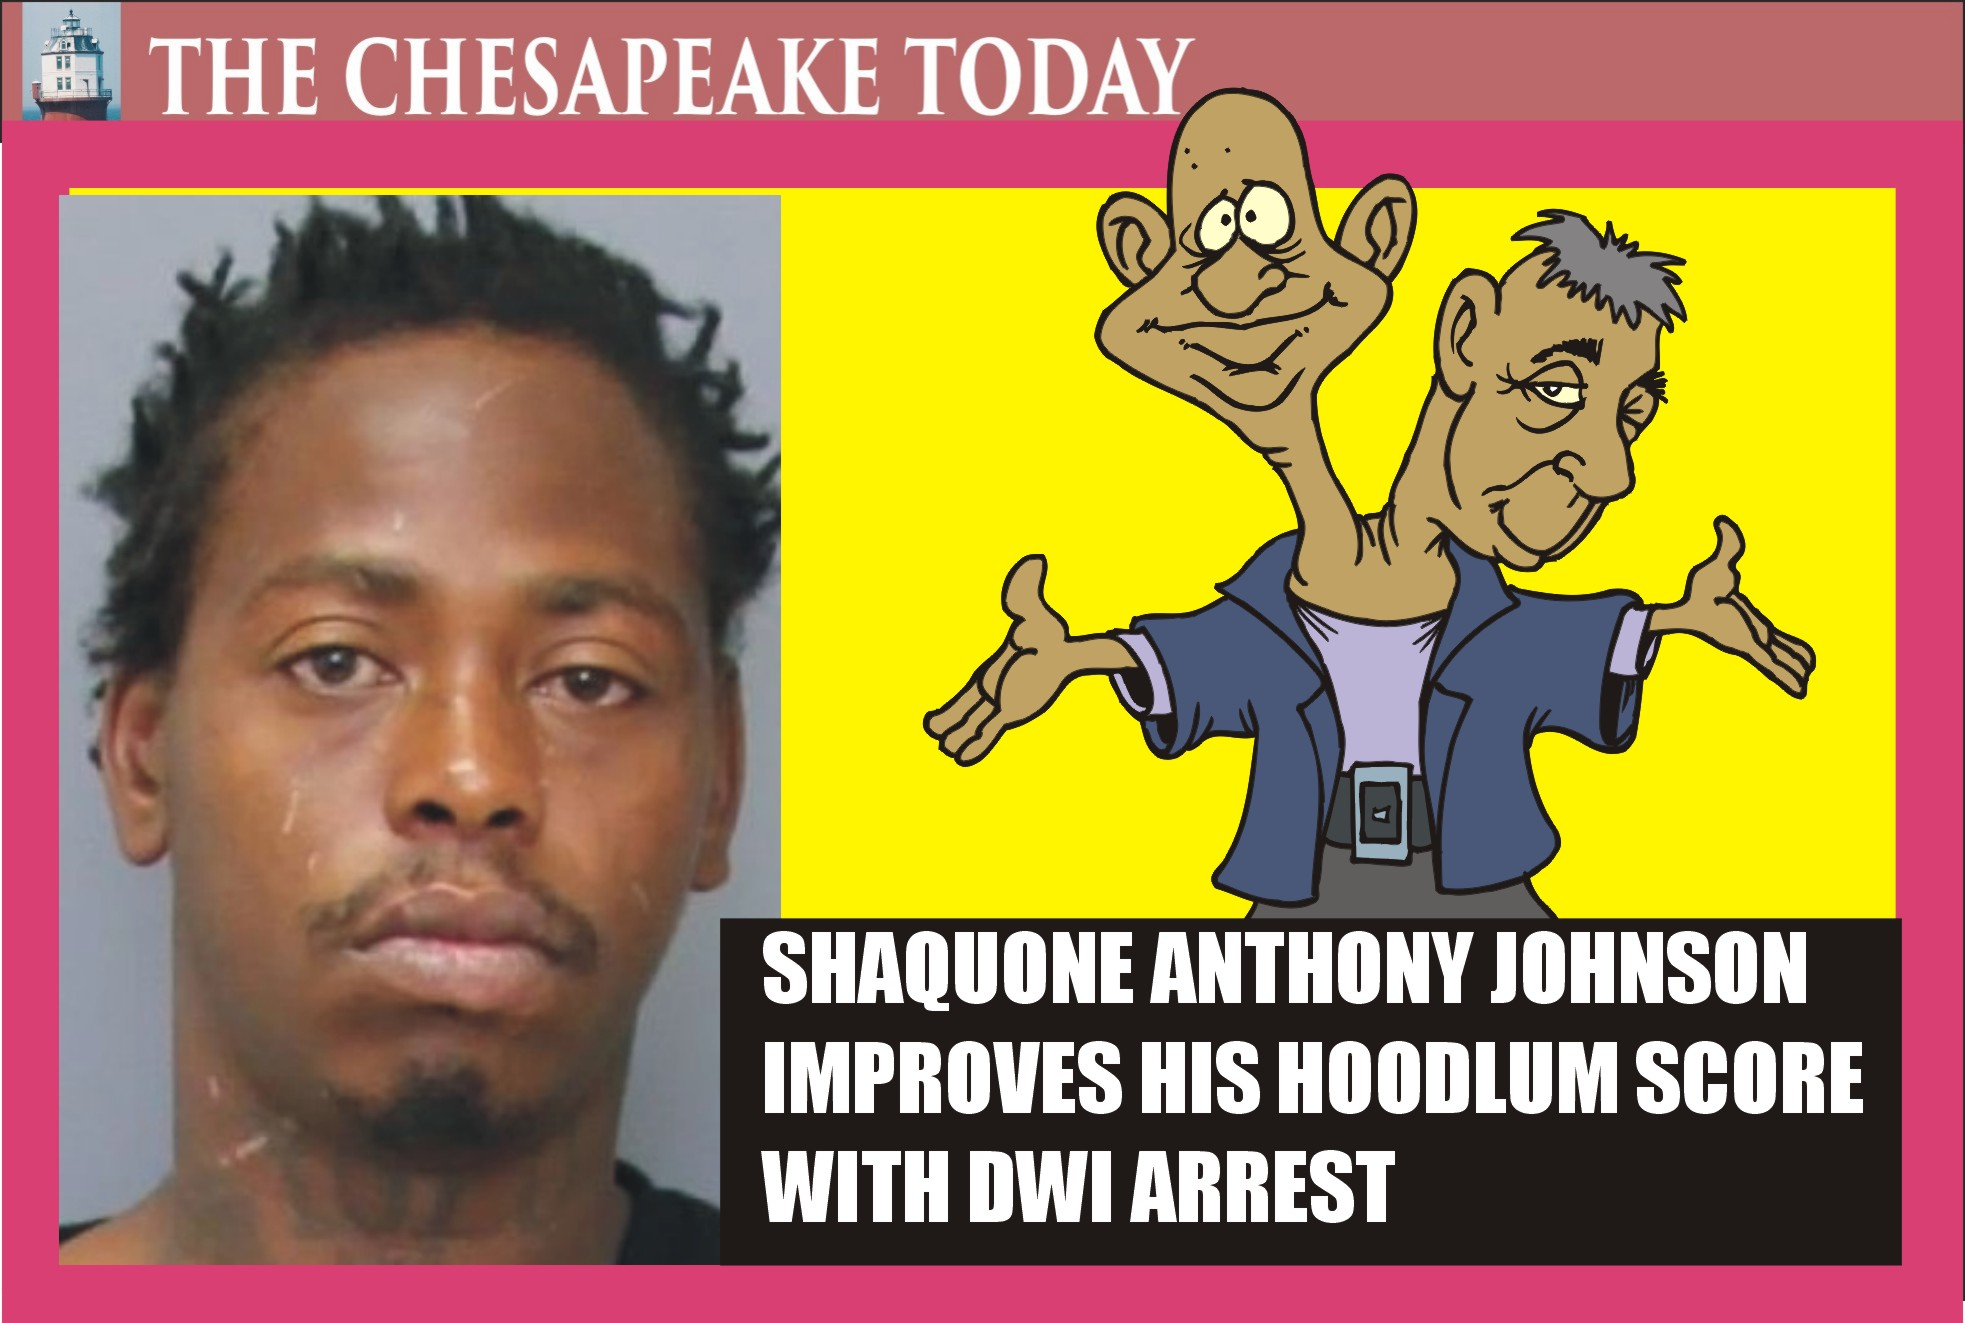 DIRTBAG ROUNDUP: New DWI arrest launched a look at drug dealer Shaquone Anthony Johnson's career highlights